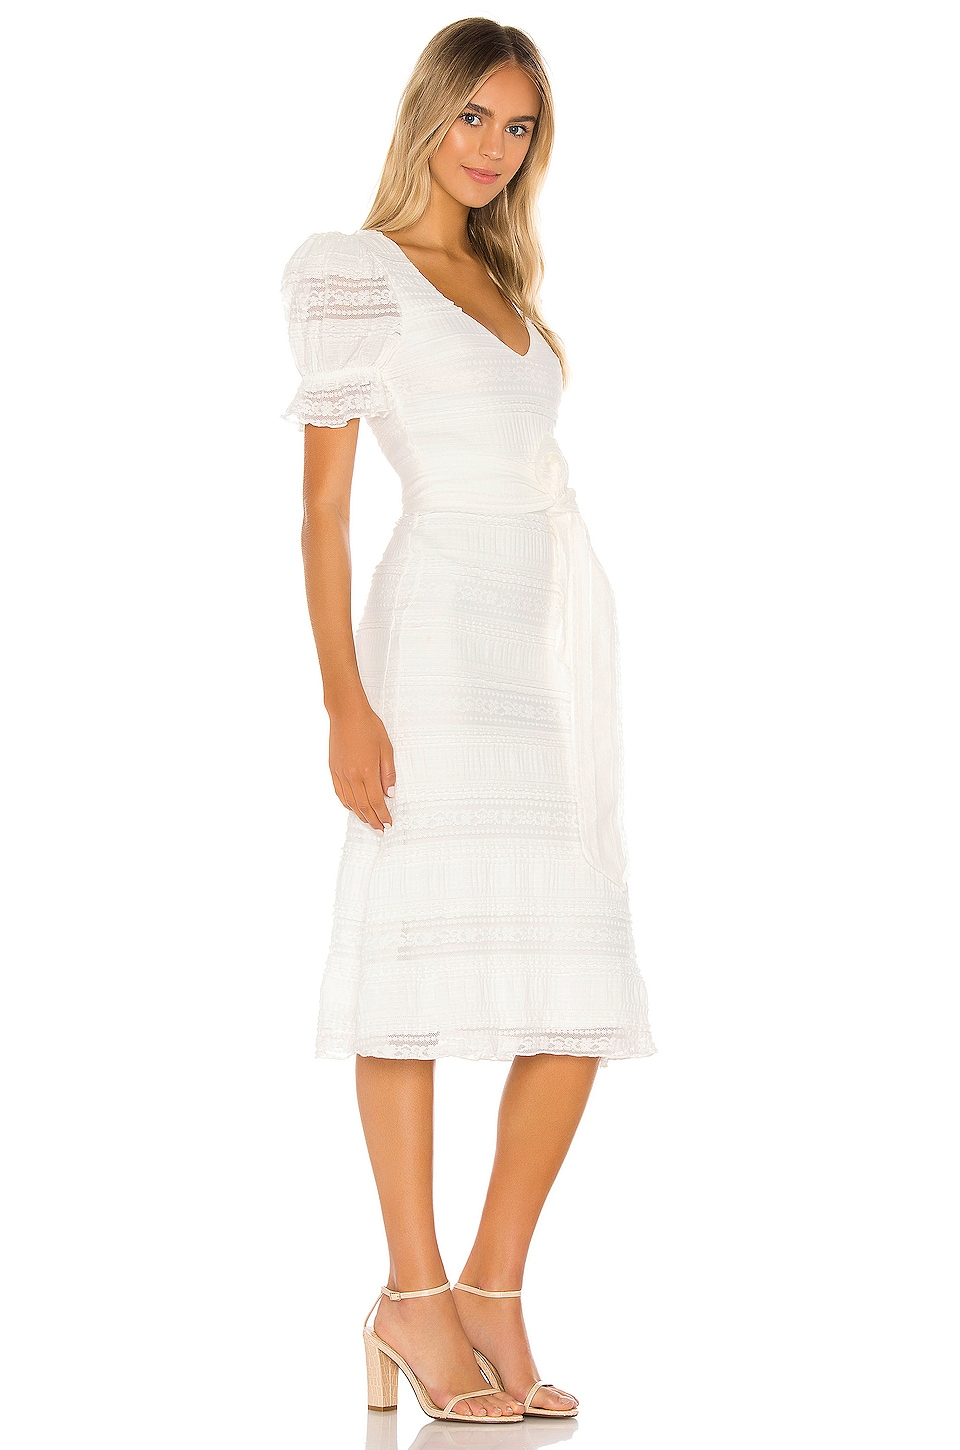 Quinn Midi Dress, view 2, click to view large image.